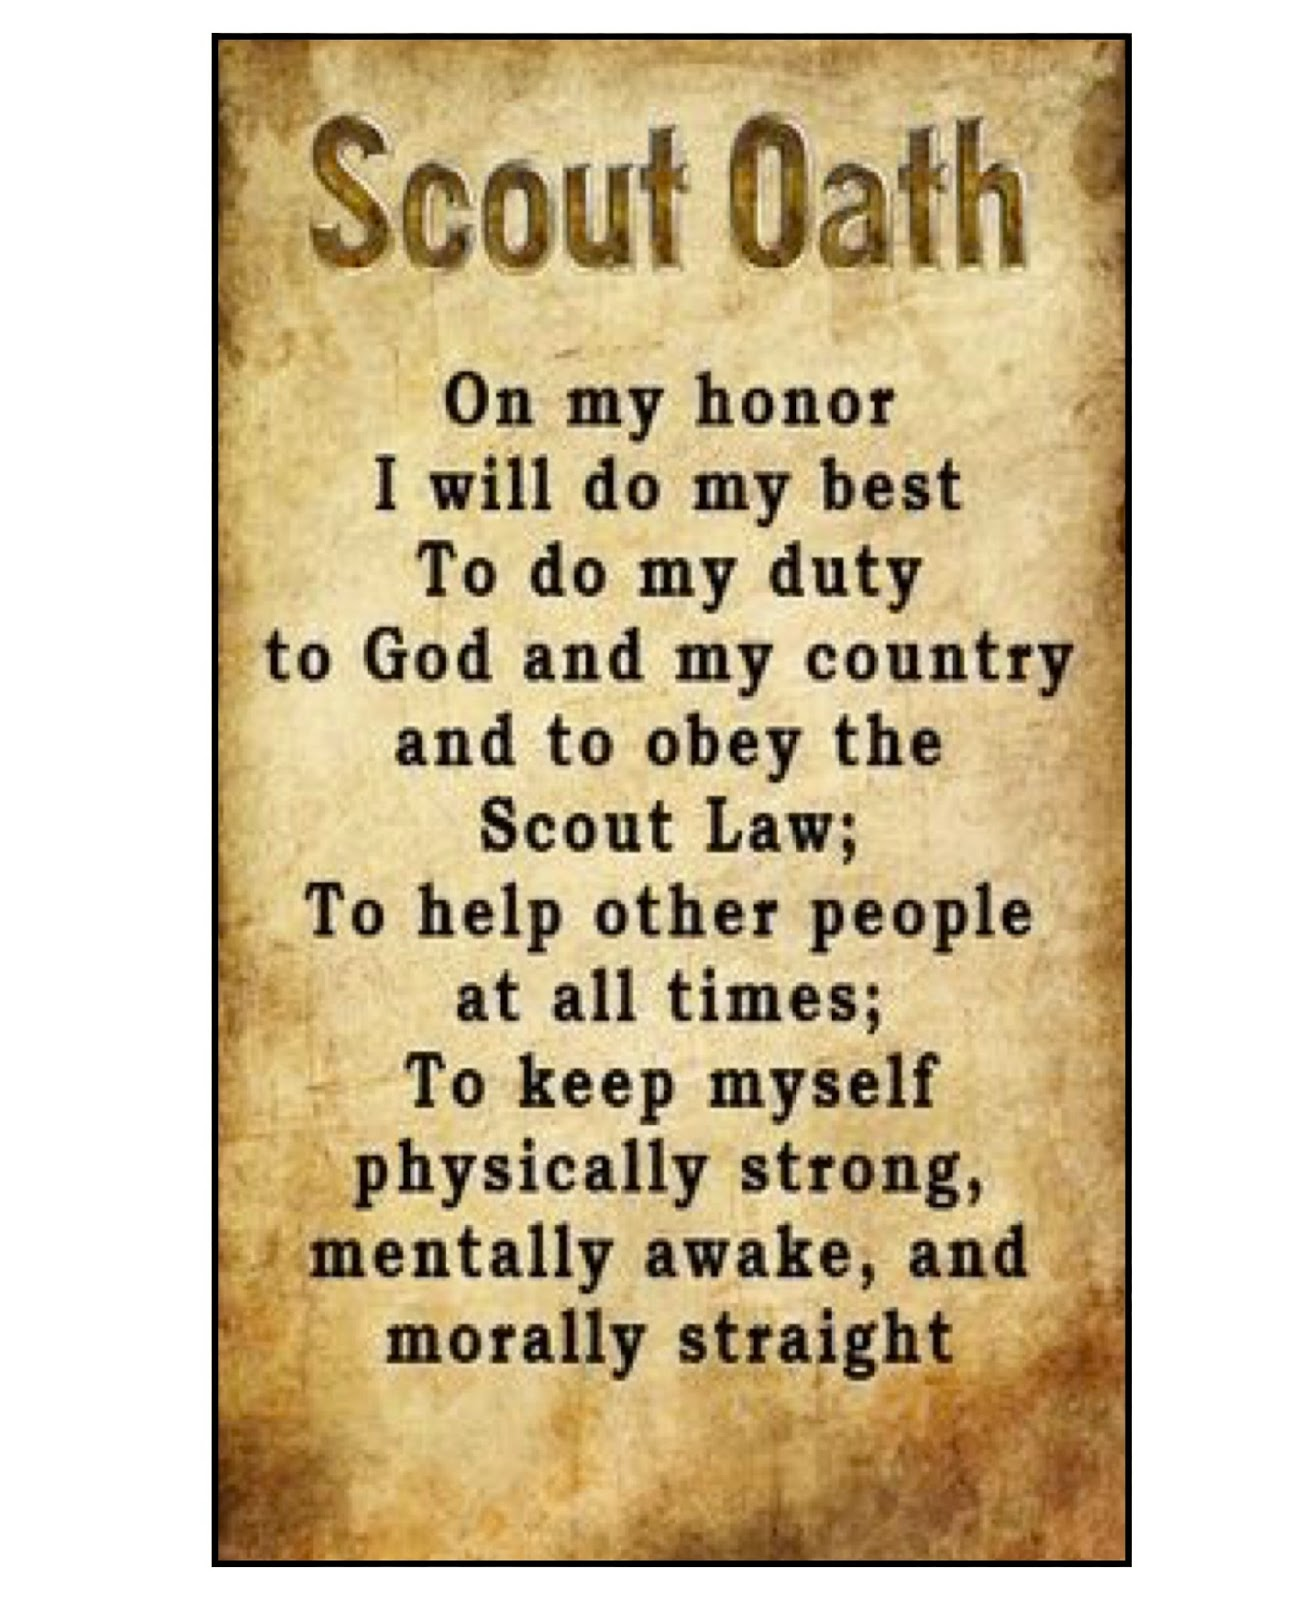 graphic relating to Cub Scout Oath Printable titled Akelas Council Cub Scout Chief Doing exercises: Cub Scout Craft